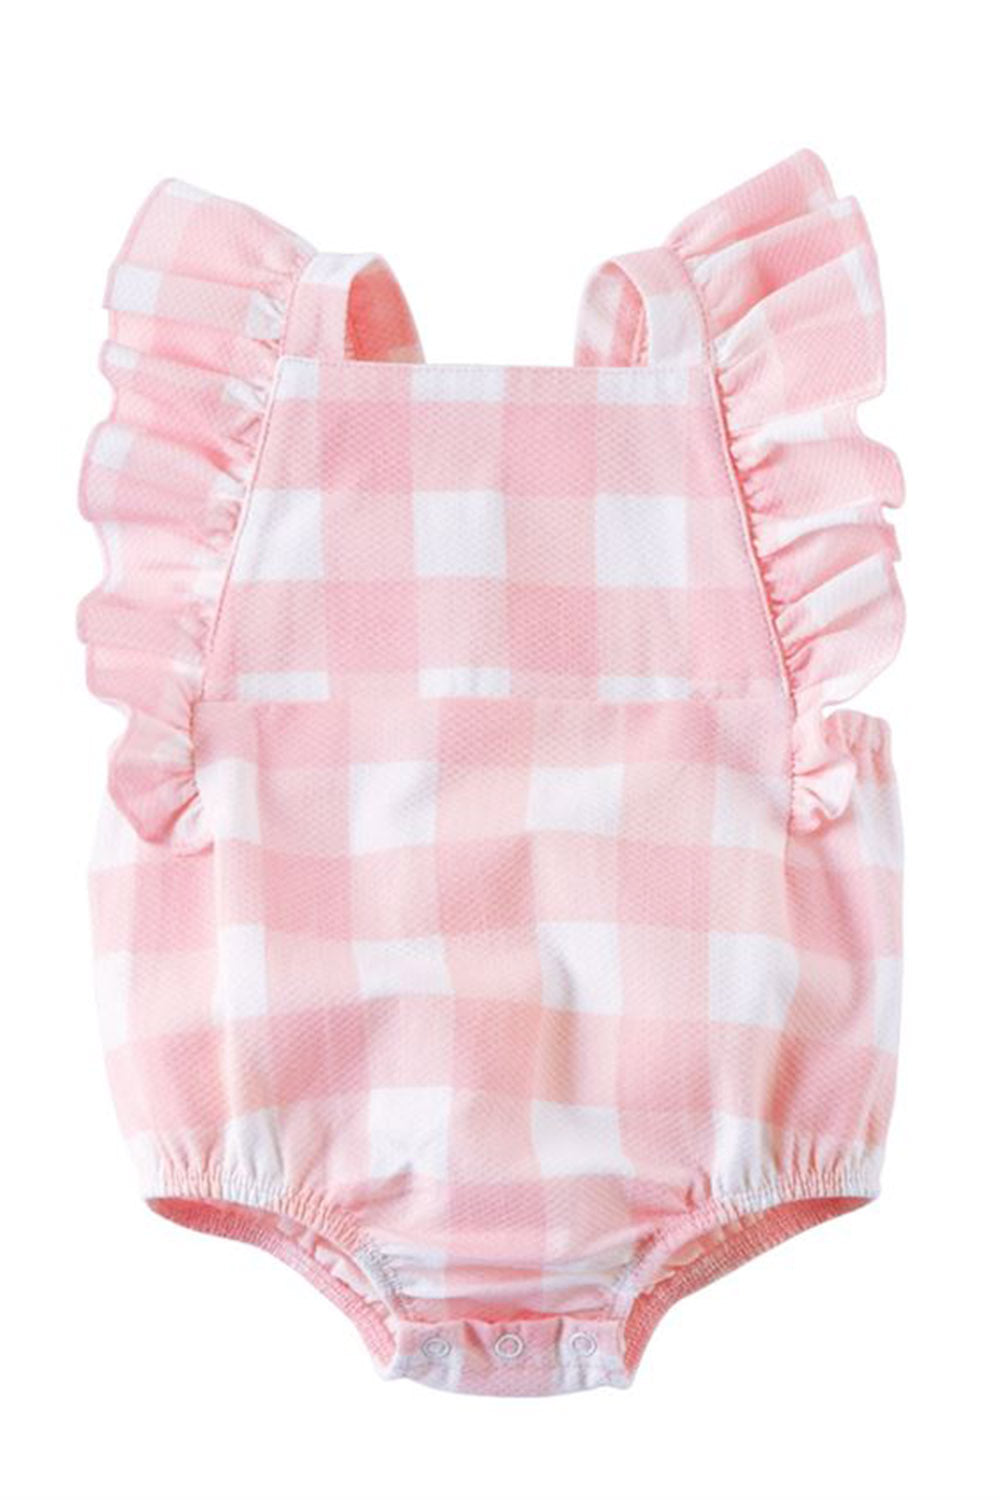 Gingham Ruffle Sunsuit - Pink